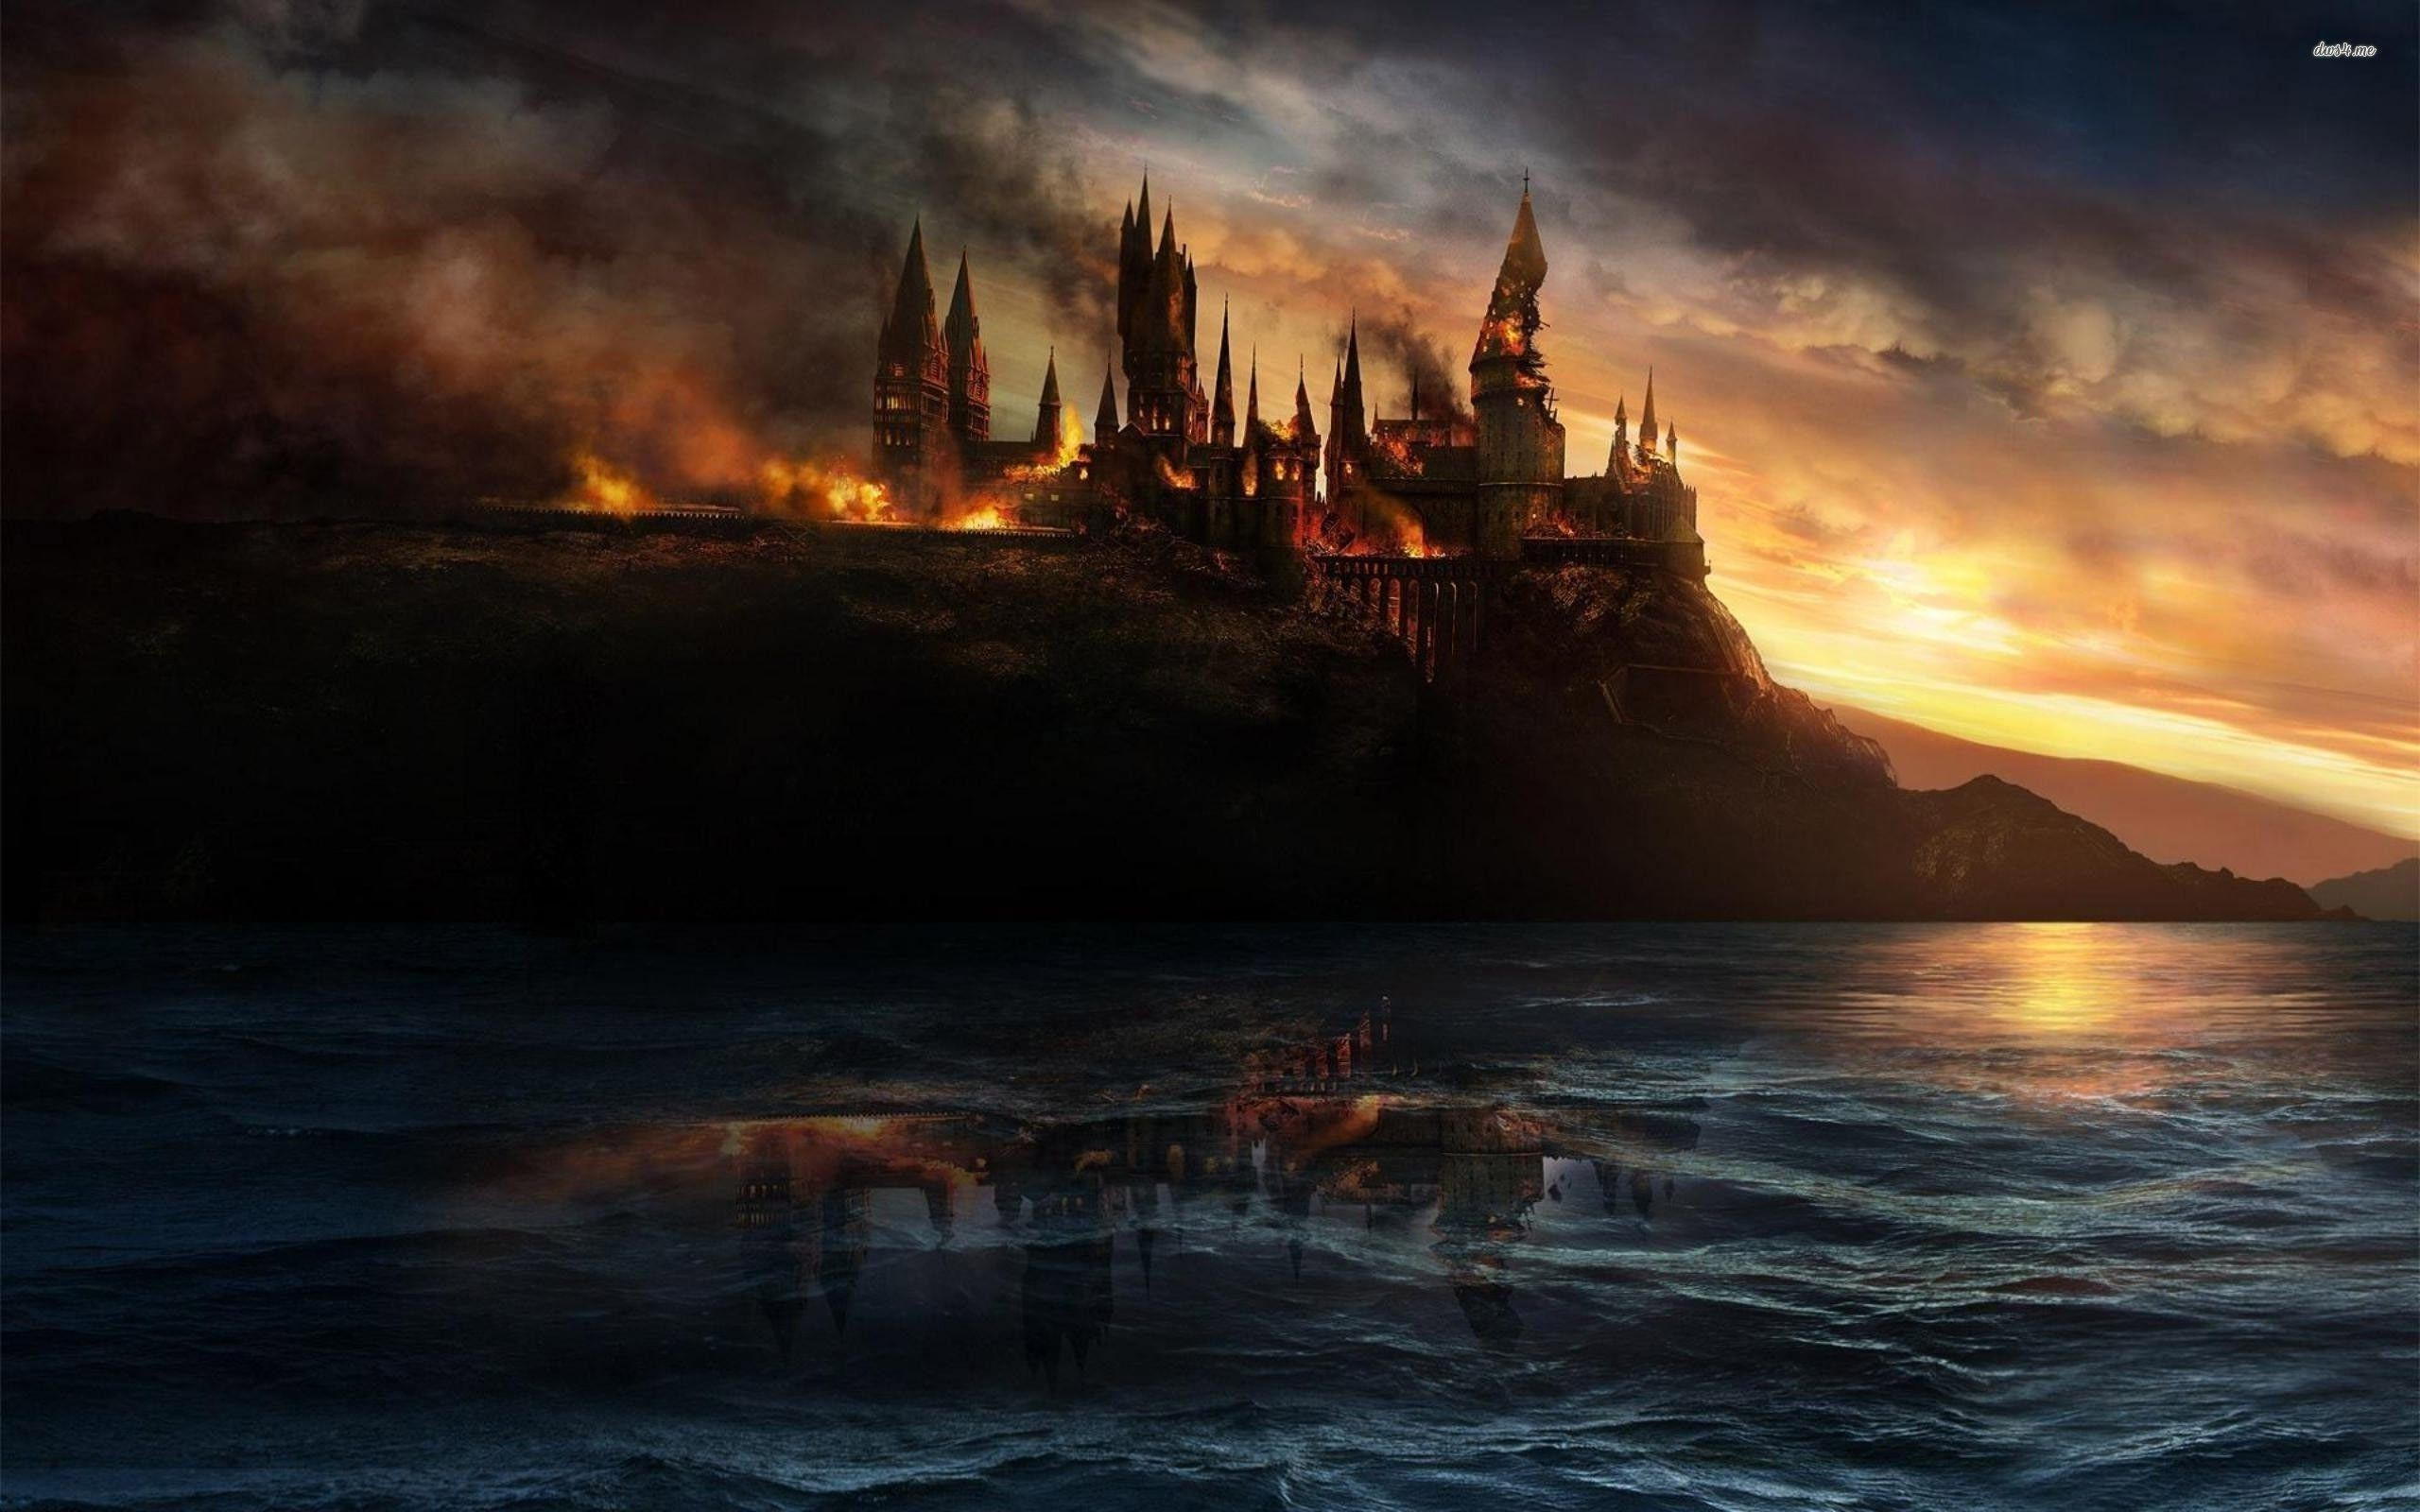 Harry Potter Deathly Hallows Wallpapers – Full HD wallpaper search